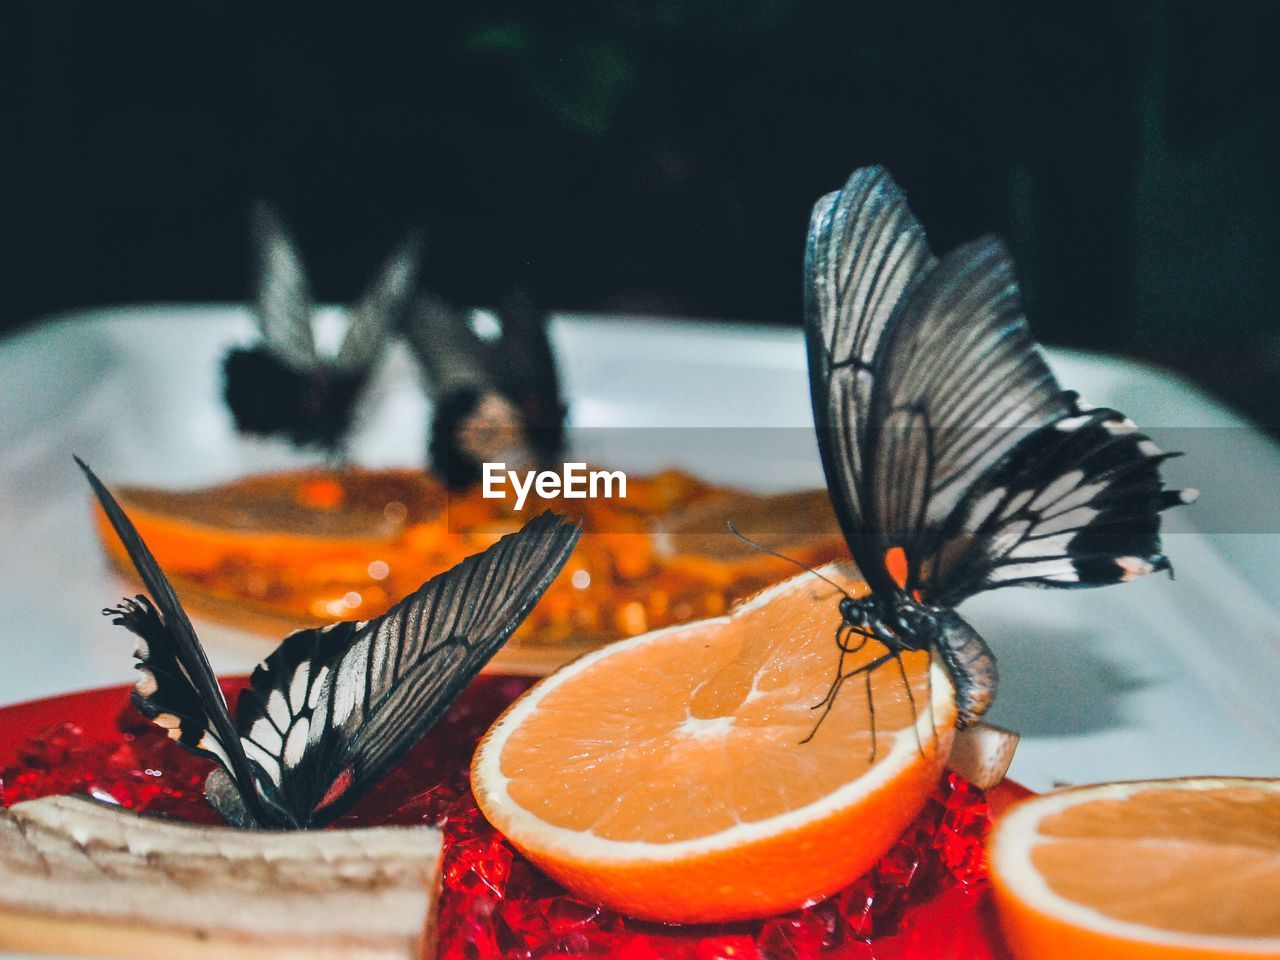 Close-Up Of Butterfly On Orange Fruit